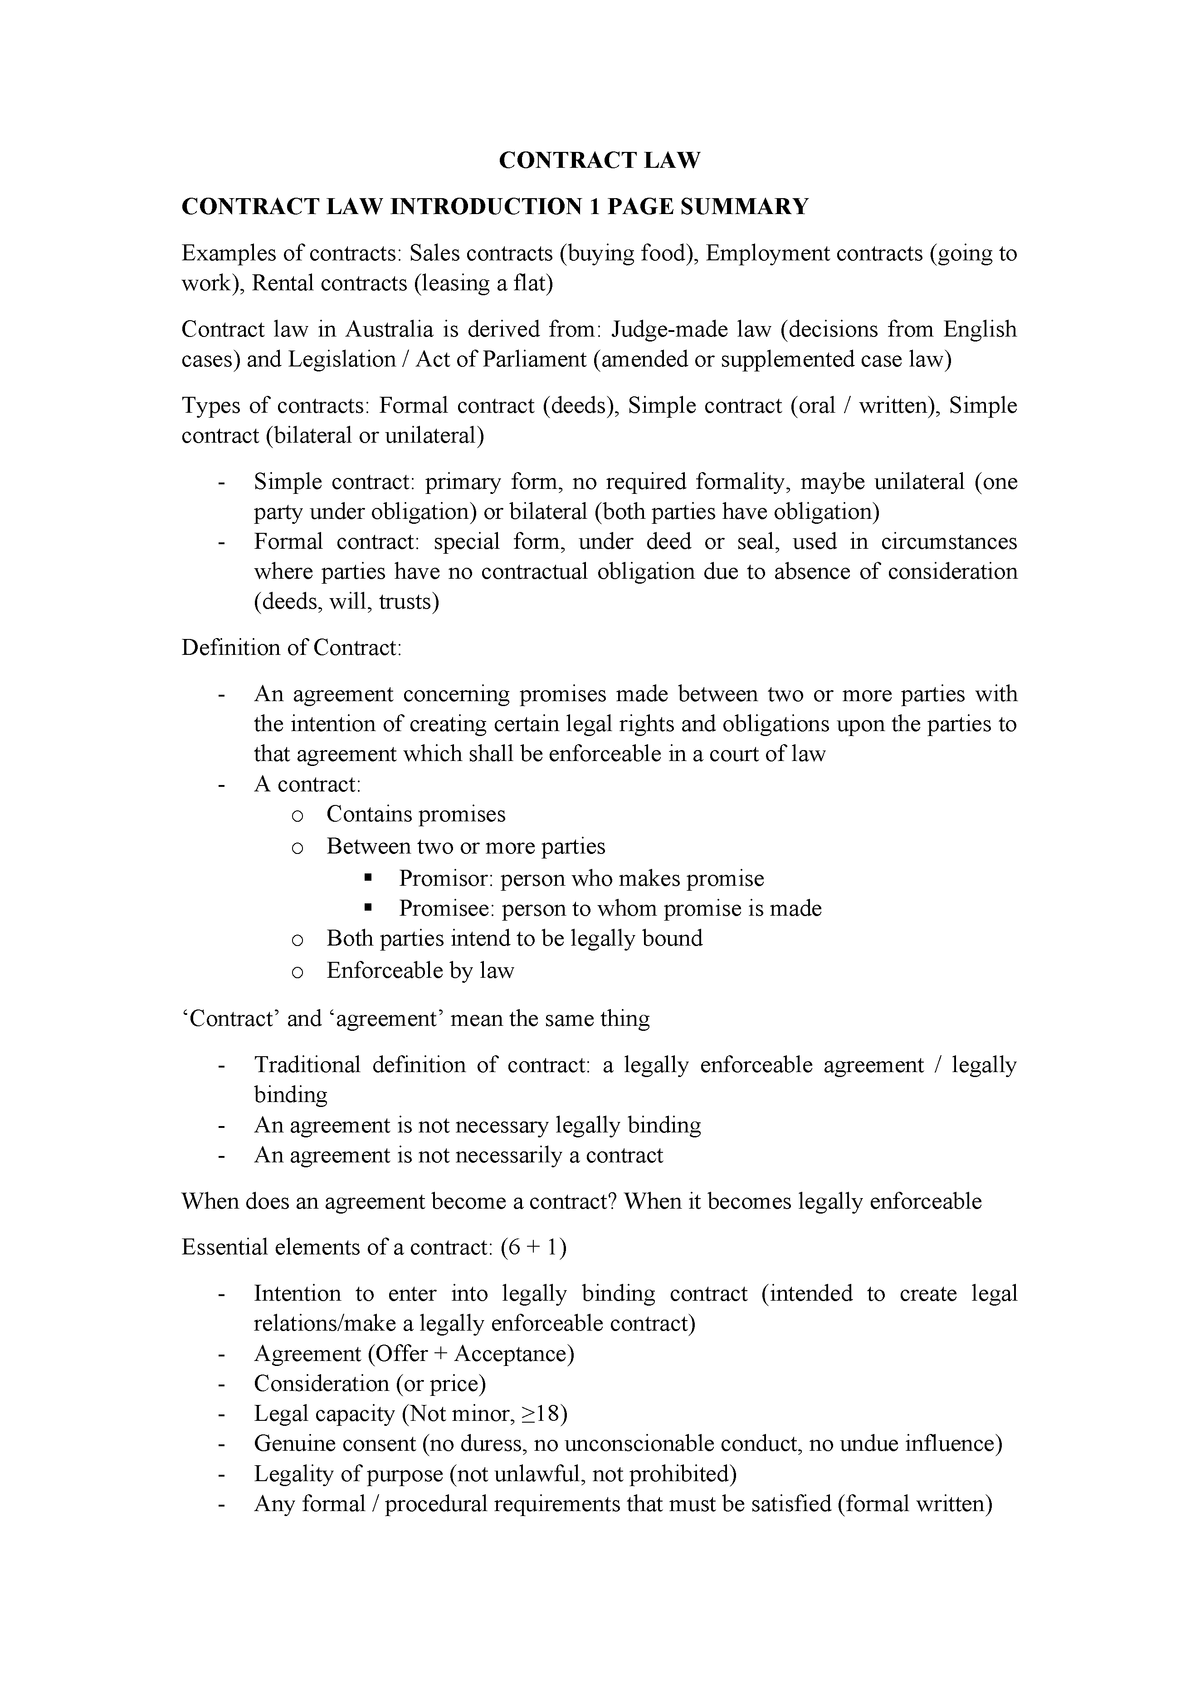 Lecture notes, lectures 1 - Contract Law - TABL1710